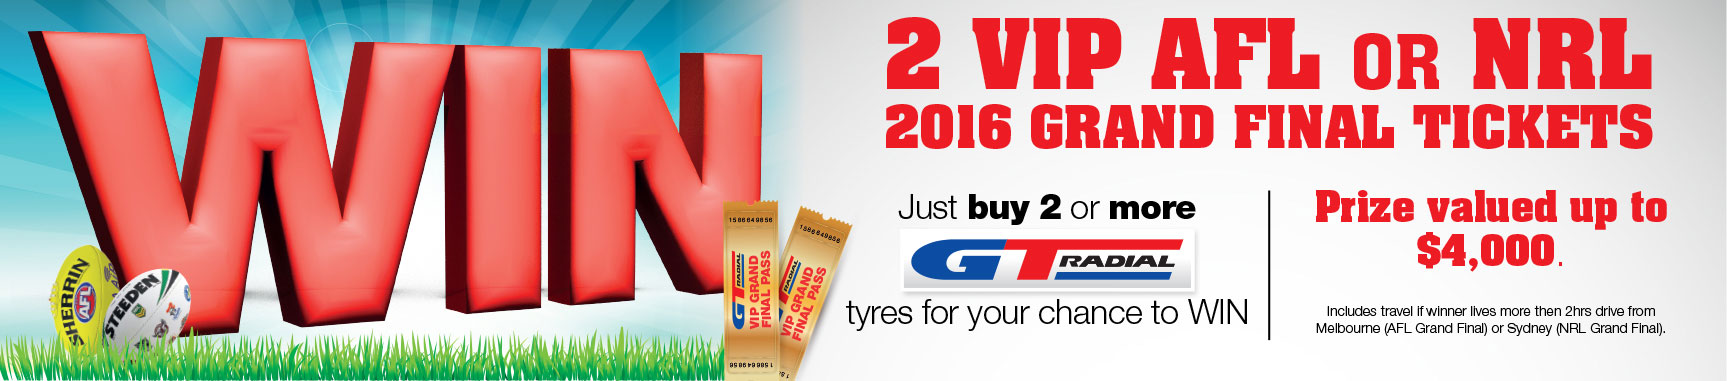 GT Radial Win VIP Grand Final Tickets